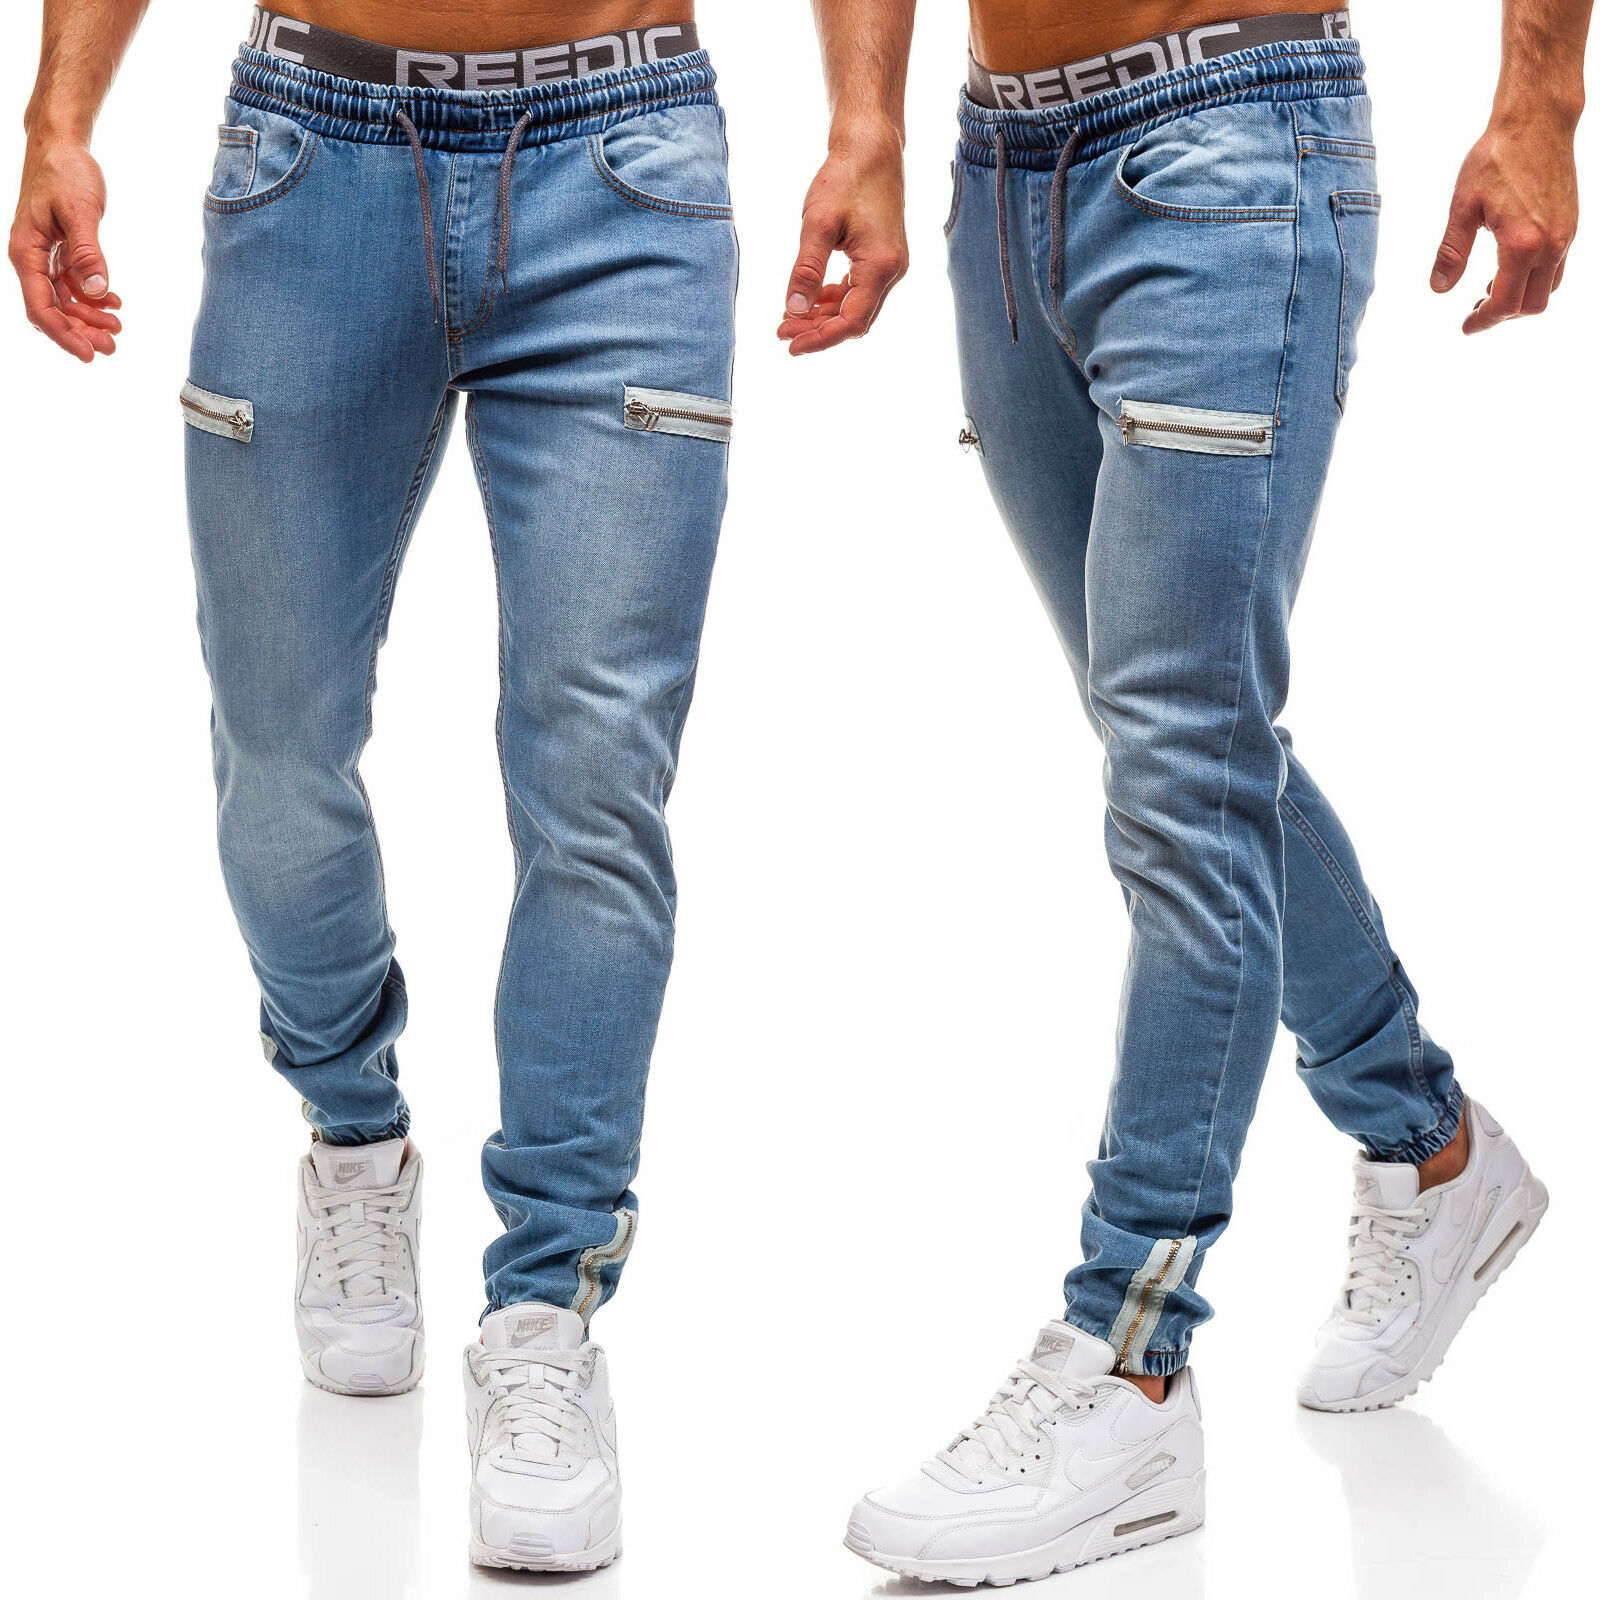 Hot Selling Europe And America Men Fashion Jean Fabric Casual Dull Polish Zipper Design Sports Jeans Men's T354